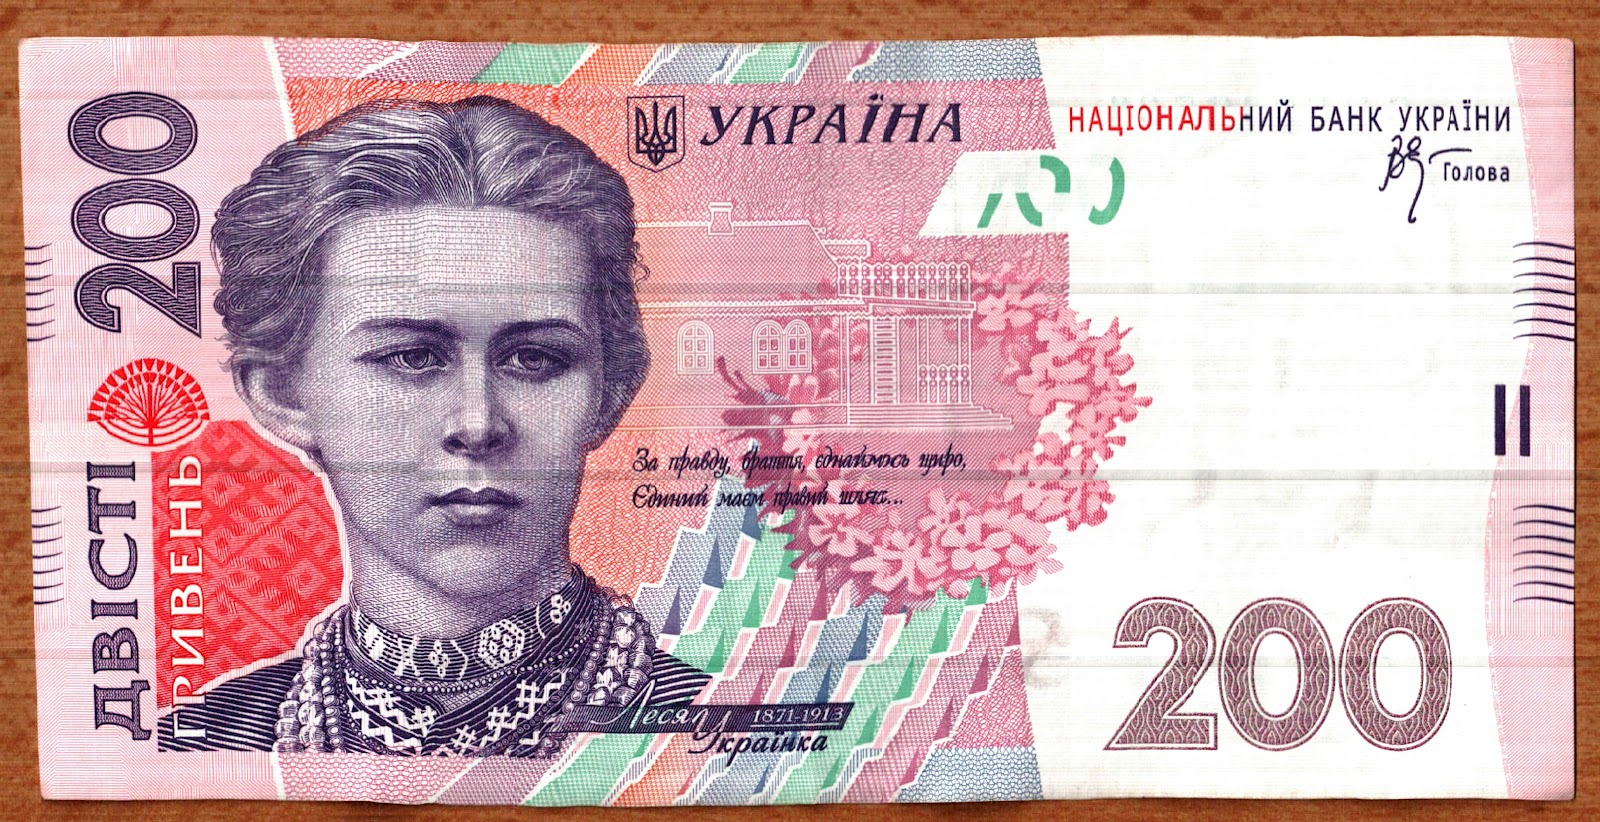 worksheet 200 Dollar Bill use my camera ukrainian currency the hryvnia there is also a 500 bill rough dollar value of 62 50 that i havent seen in person yet atms have been giving us 200 or bills and